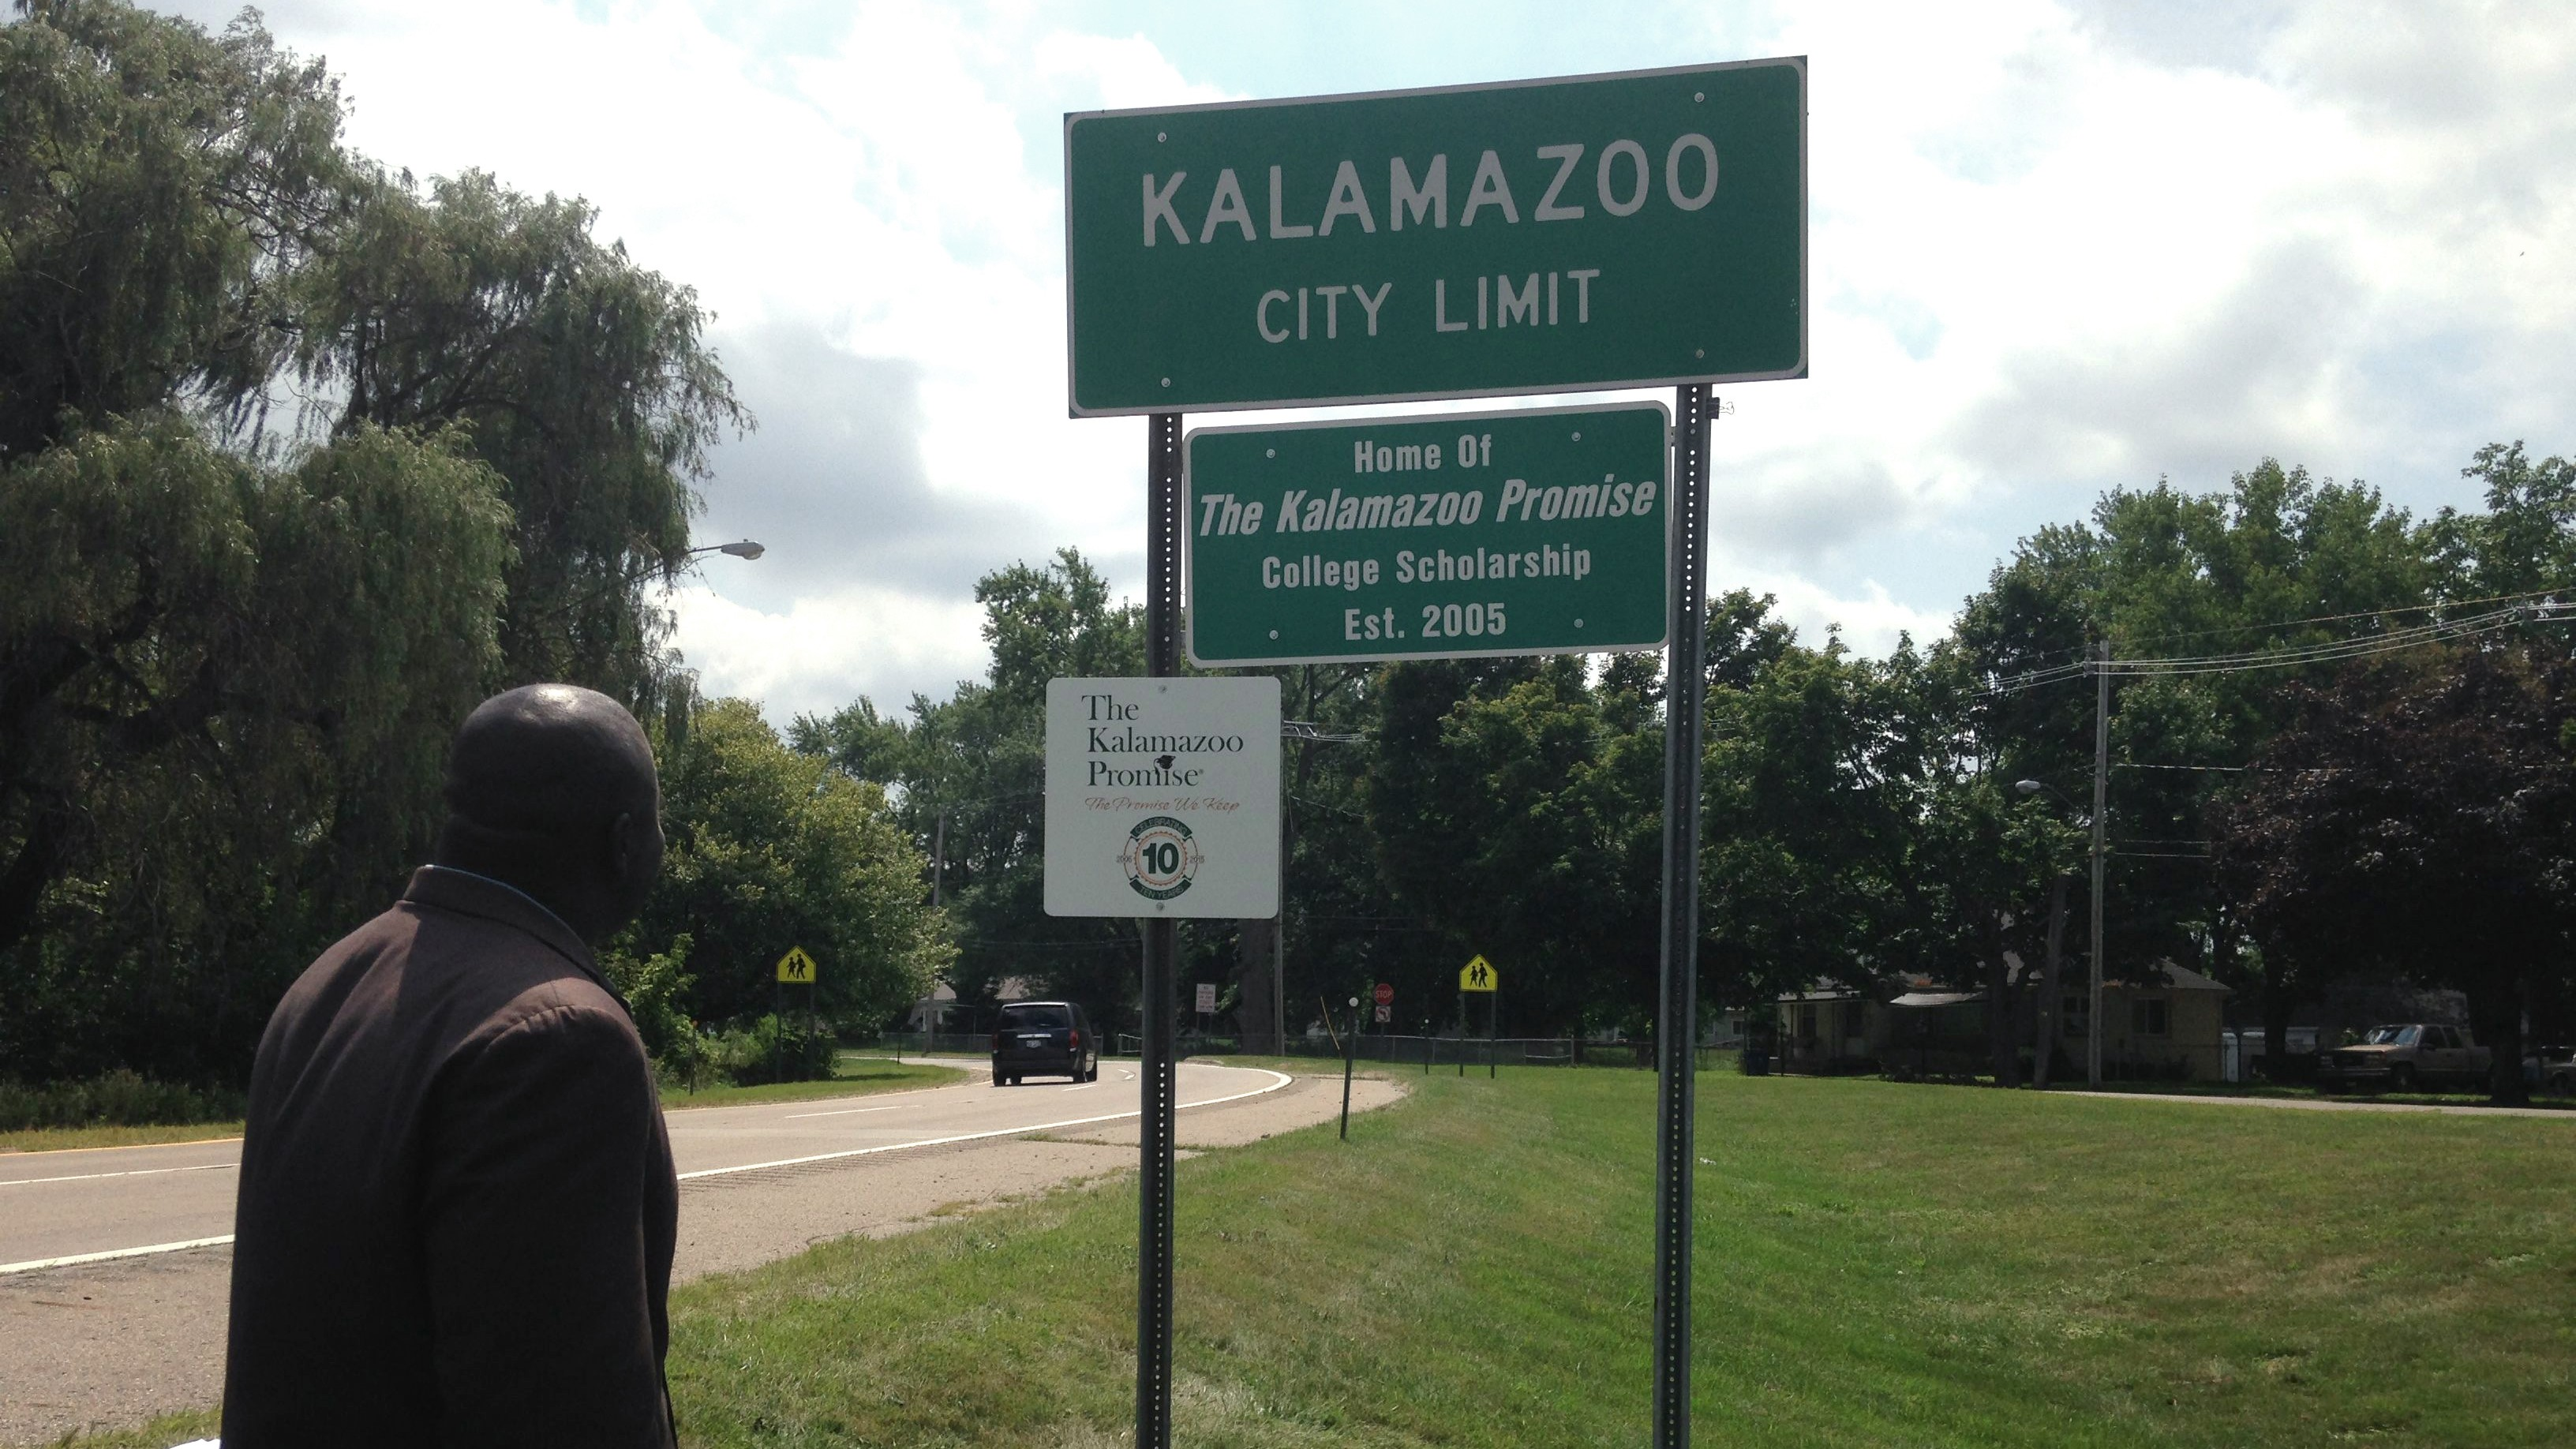 A scene from Kalamazoo on a better day.